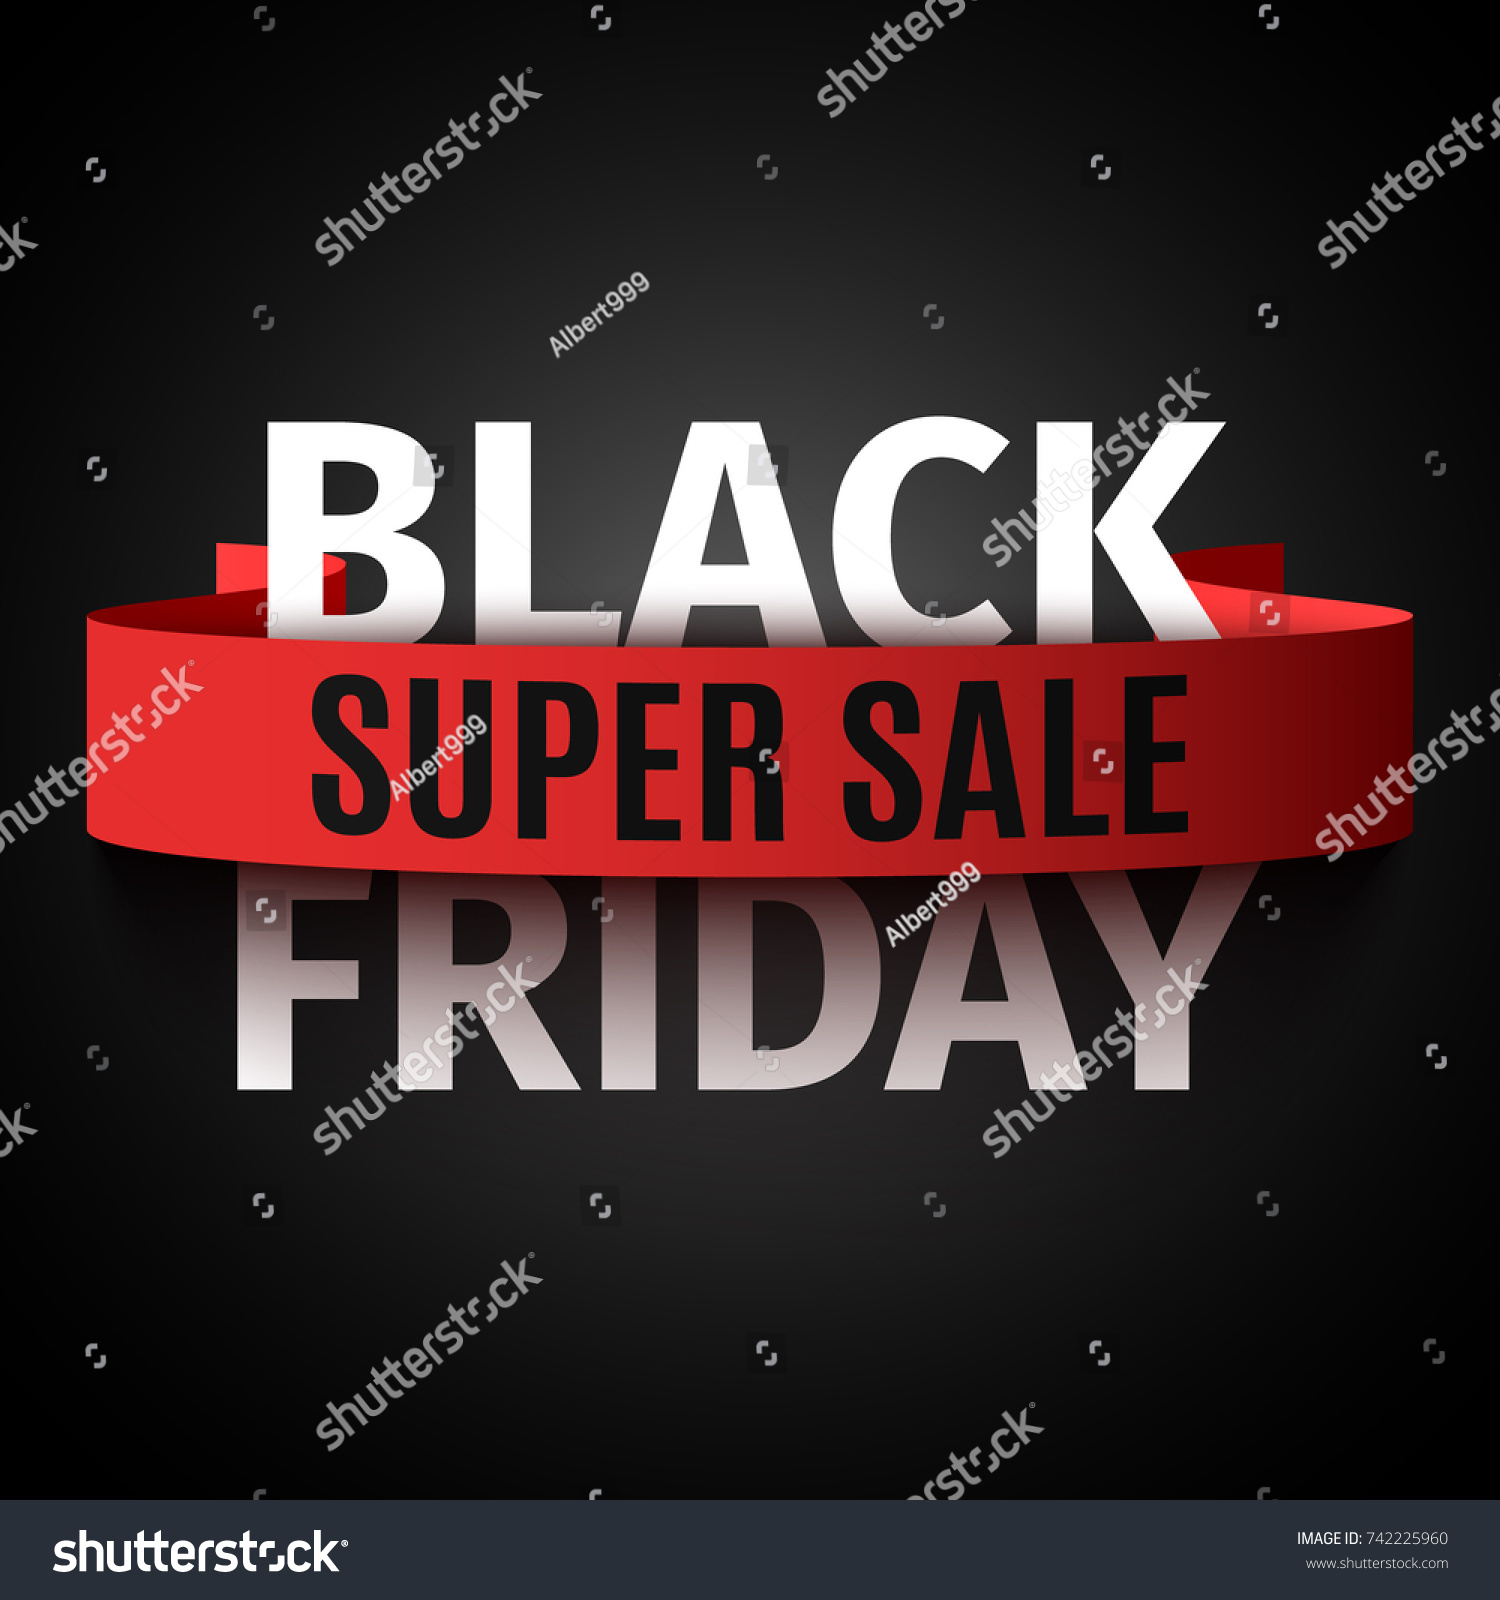 Black Sale Black Friday Sale Banner Vector Illustration Stok Vektör Telifsiz